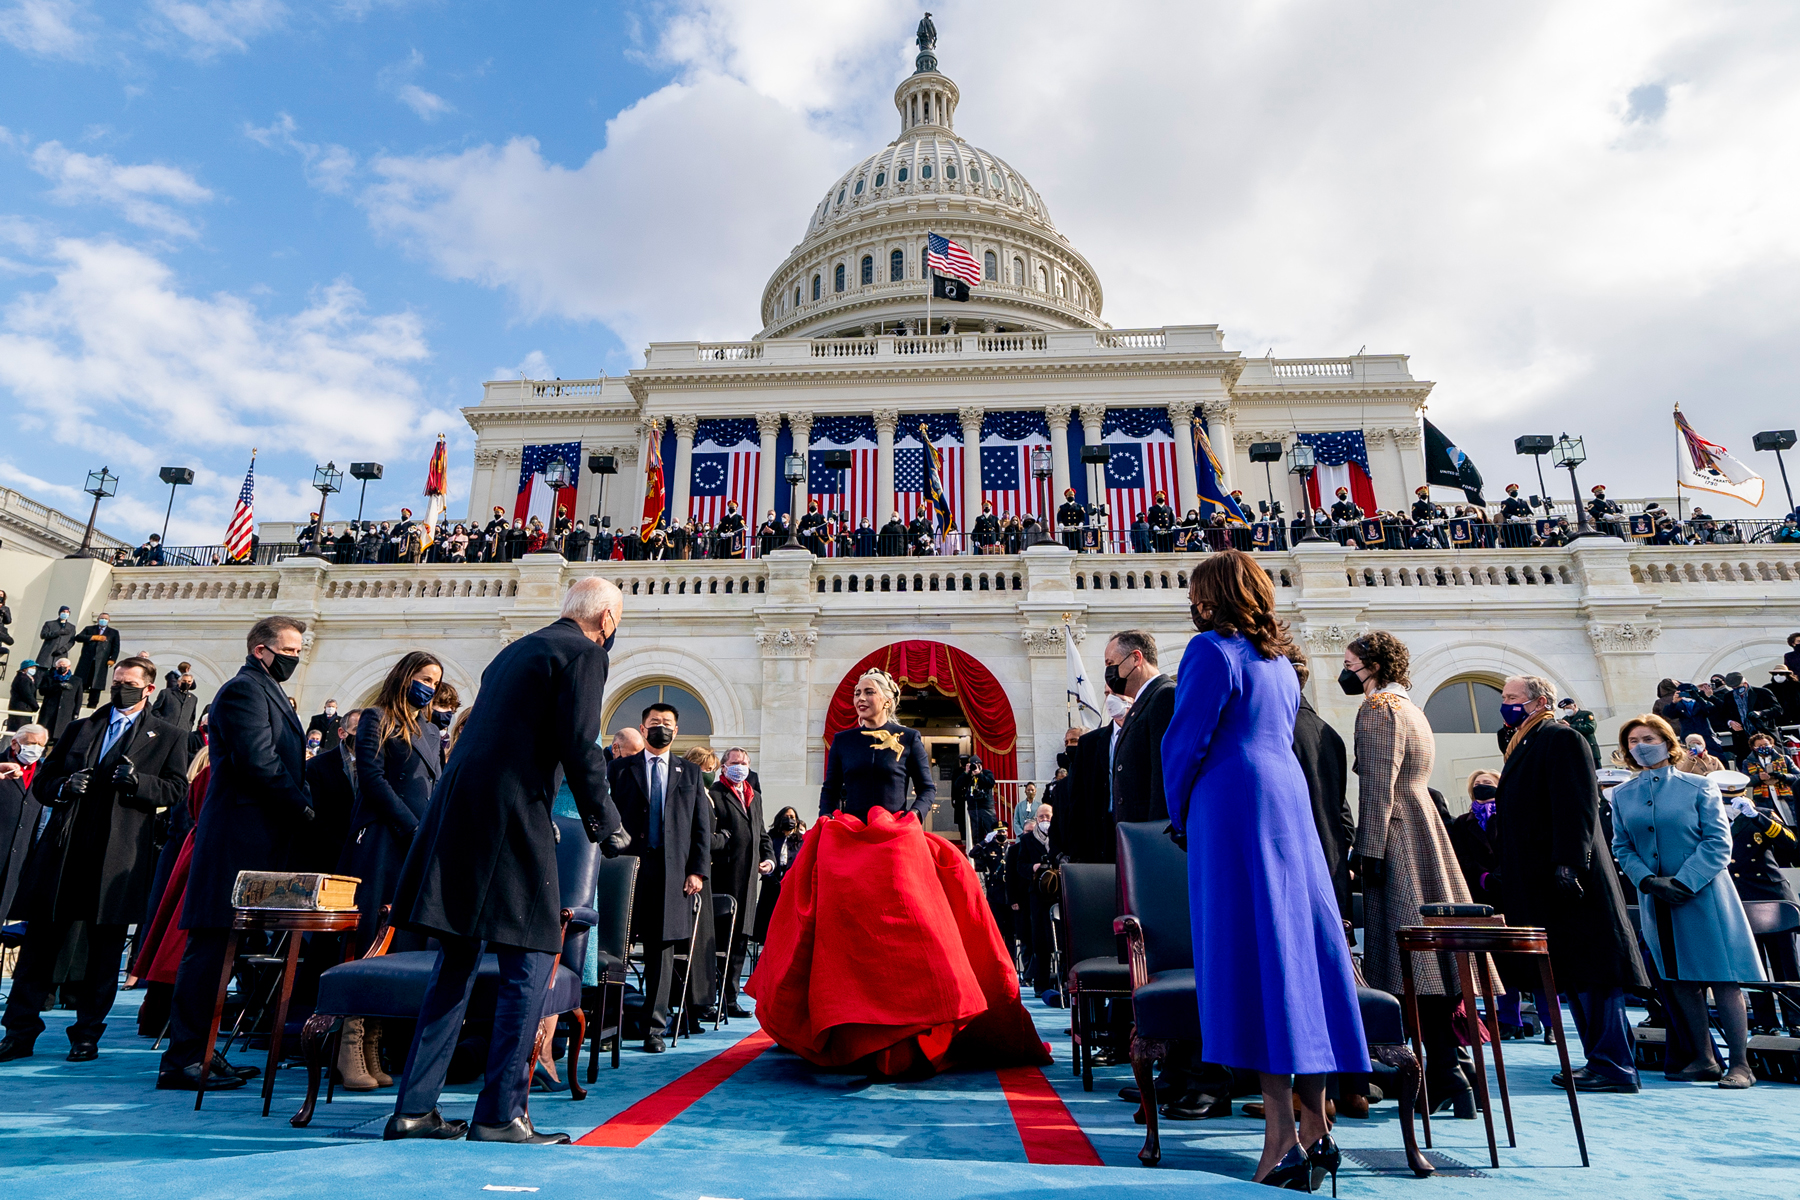 US singer Lady Gaga (C) arrives to perform the National Anthem as President-elect Joe Biden (L) and Vice President-elect Kamala Harris (R) watch during the 59th Presidential Inauguration on January 20, 2021, at the US Capitol in Washington, DC. (Photo by Andrew Harnik / POOL / AFP) (Photo by ANDREW HARNIK/POOL/AFP via Getty Images)